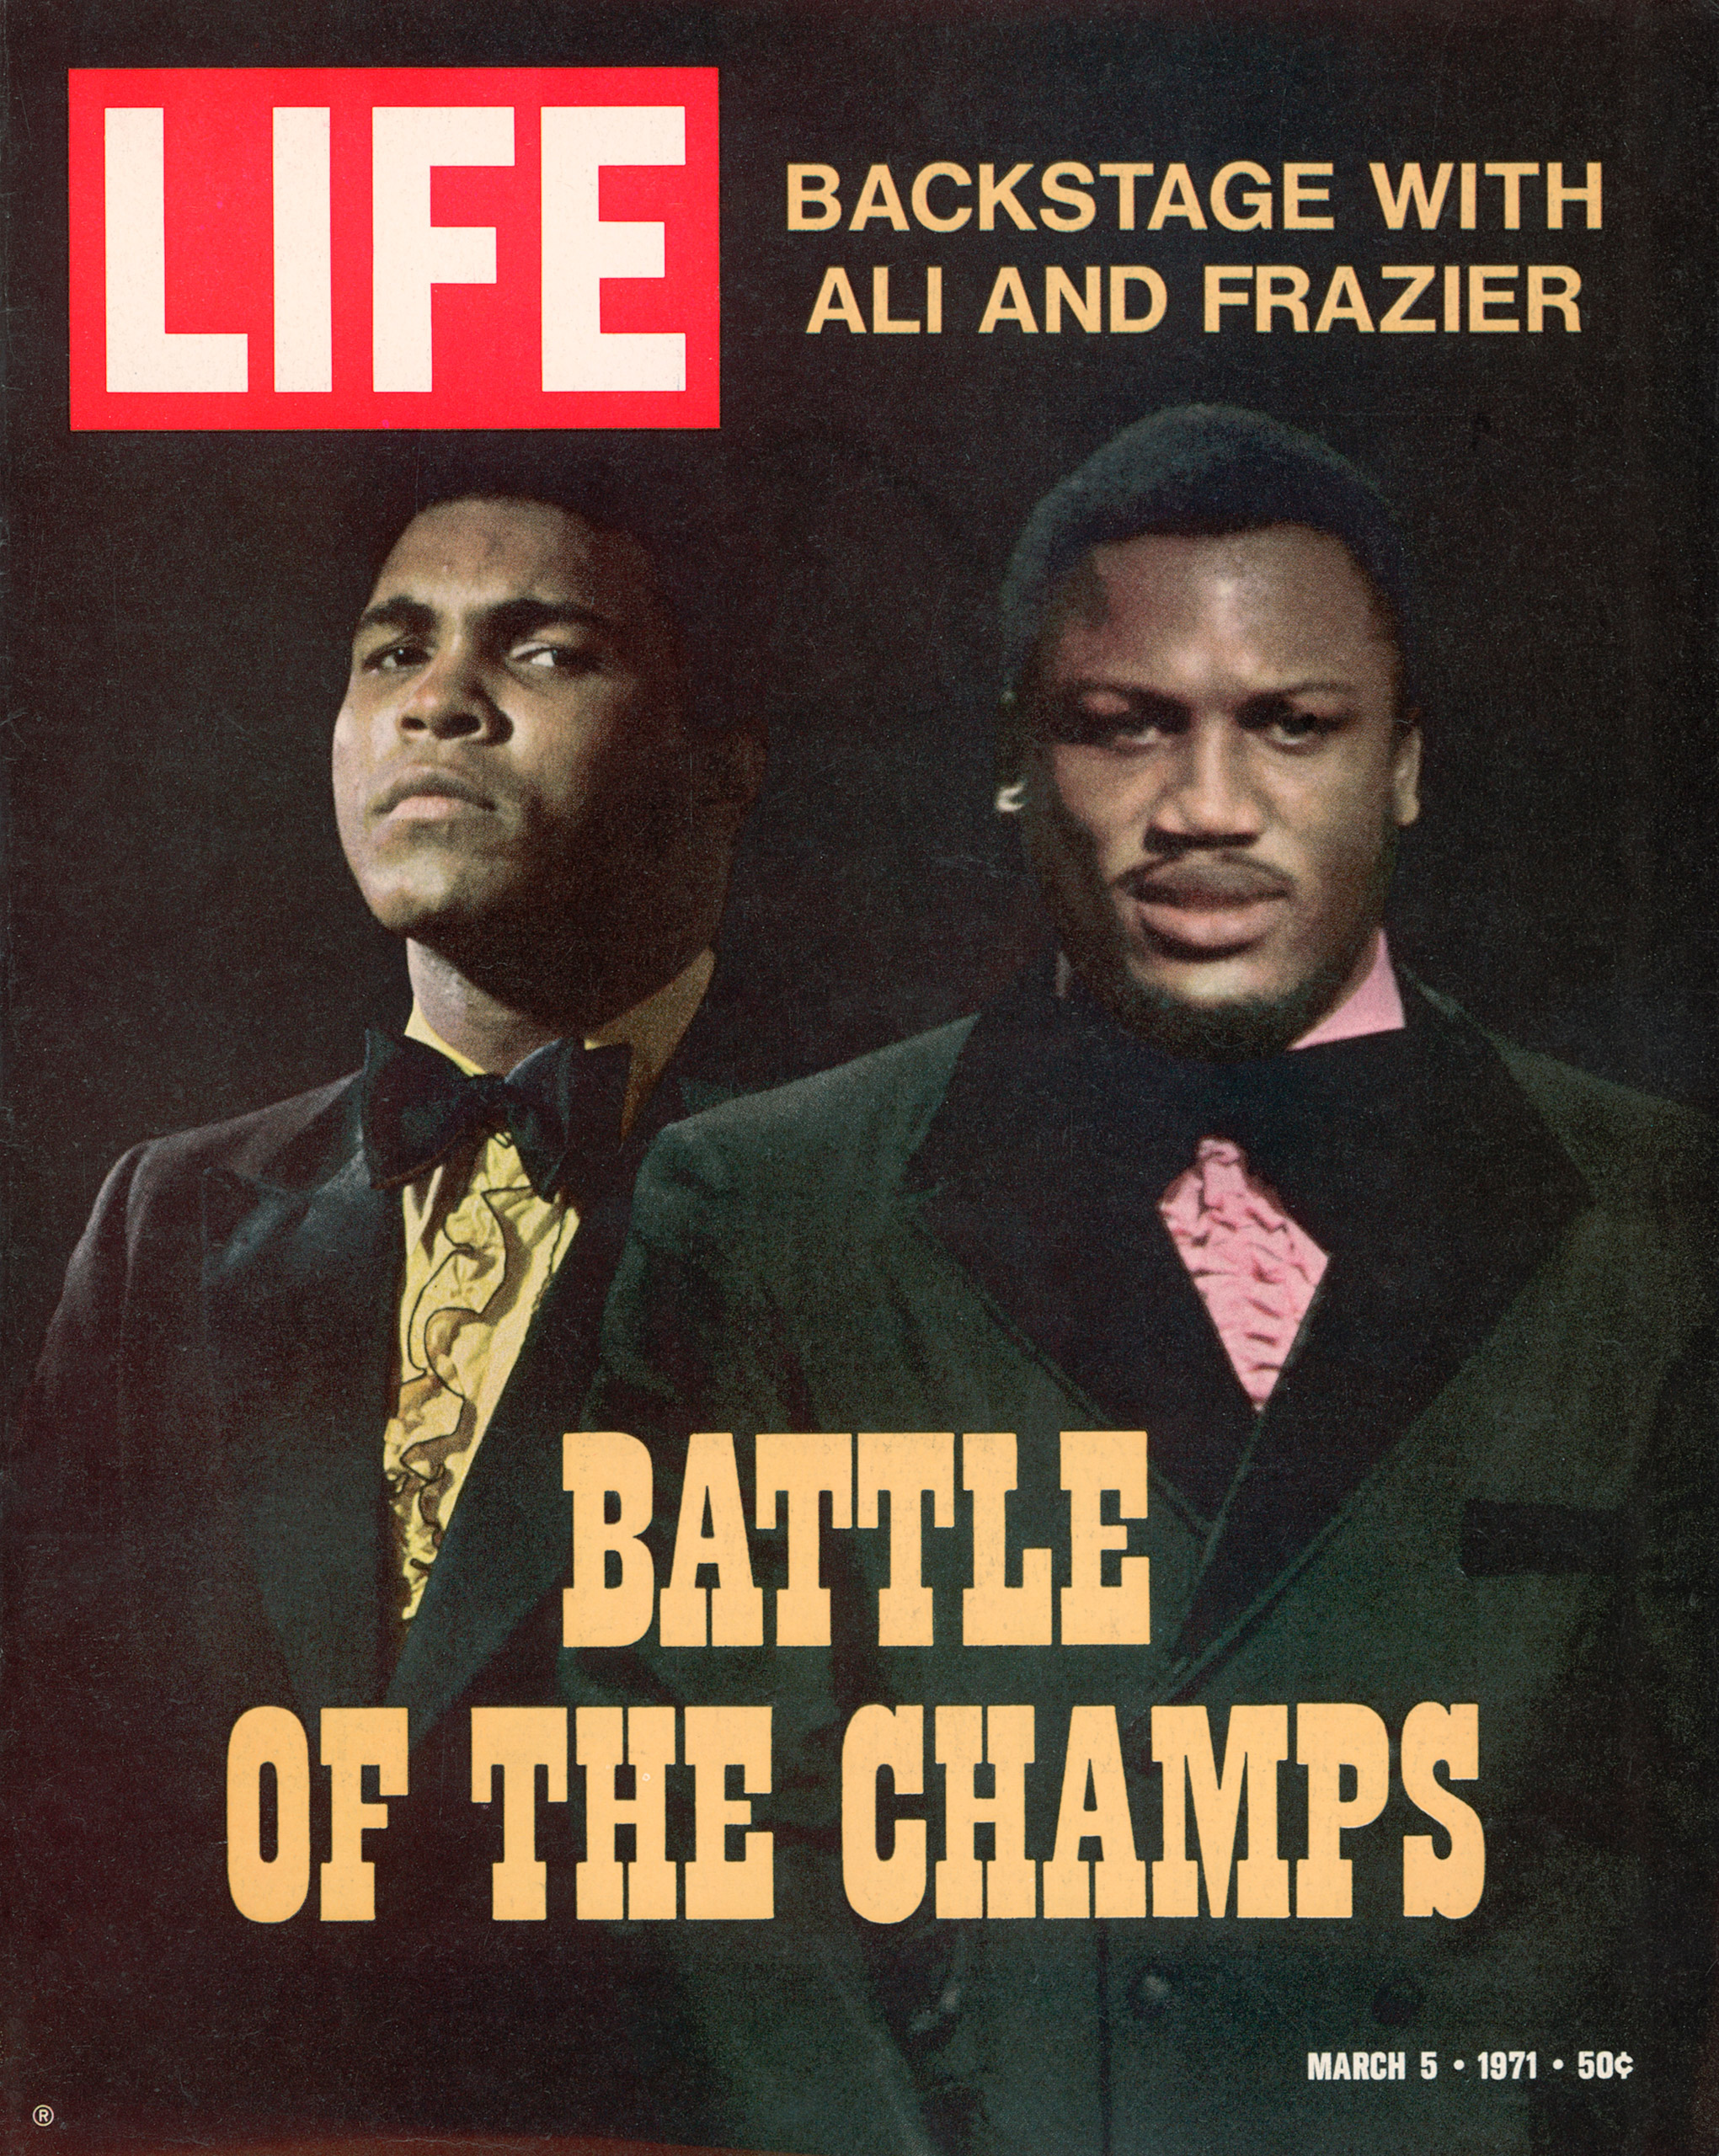 Muhammad Ali and Joe Frazier LIFE cover.